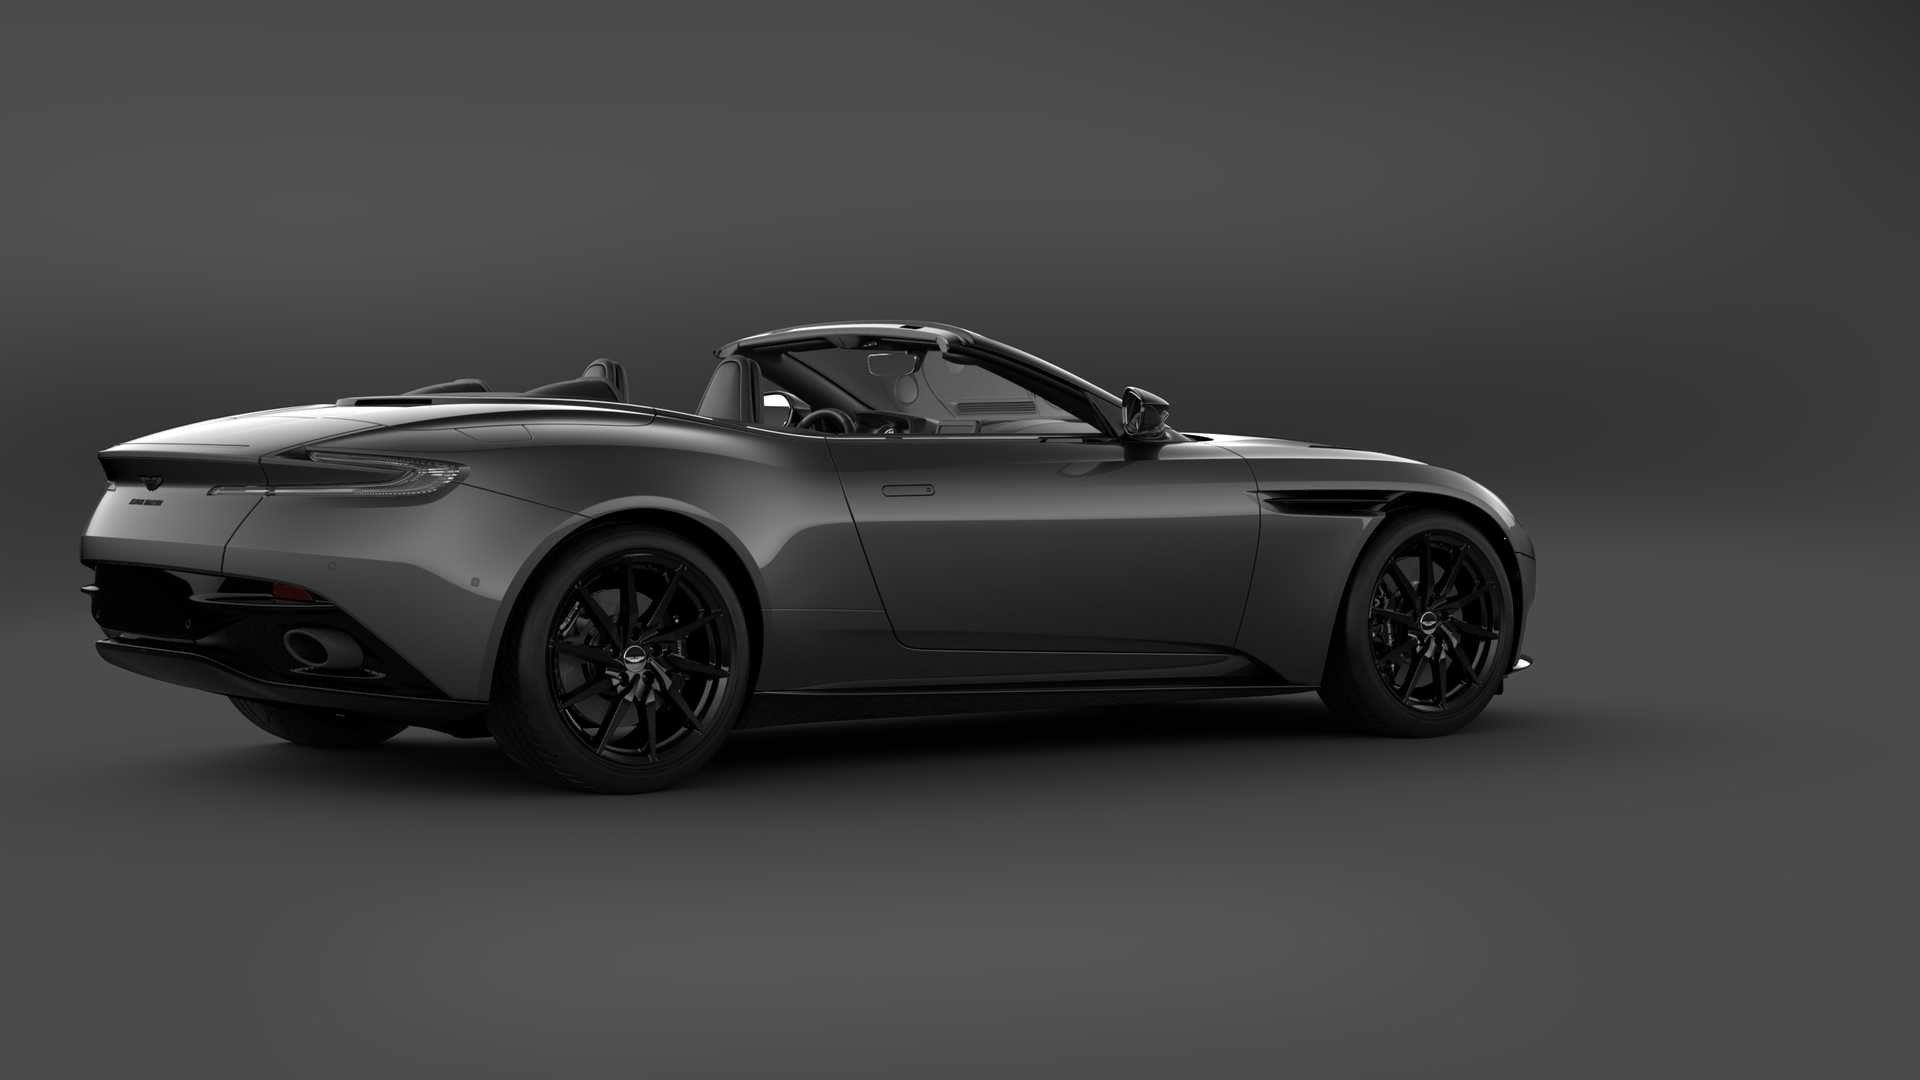 2021-aston-martin-db11-v8-shadow-edition-5.jpg